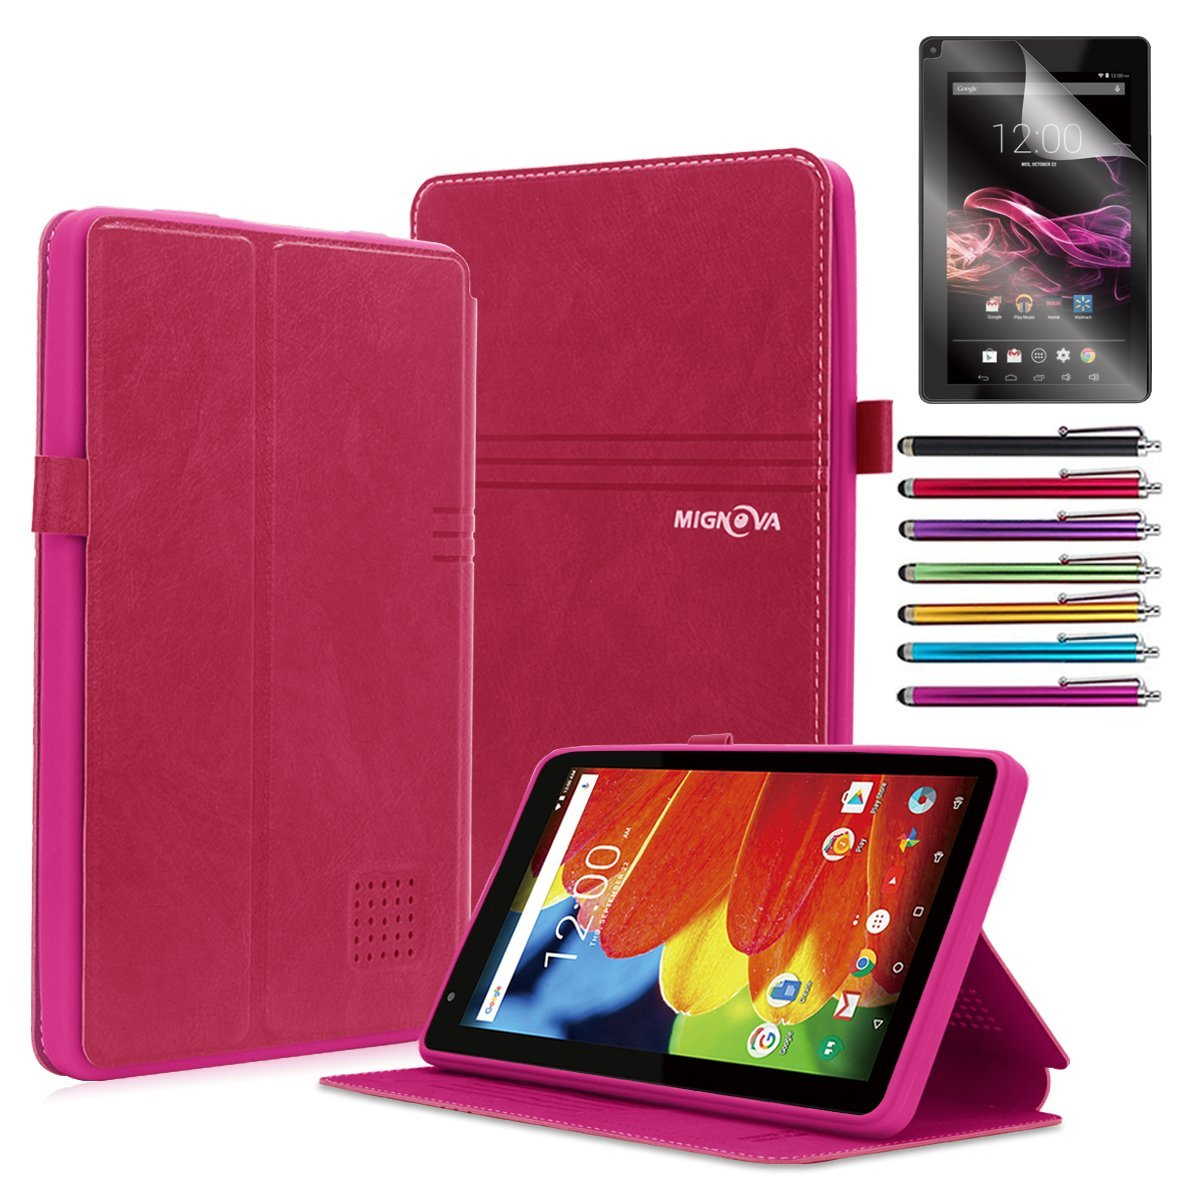 """Mignova RCA Voyager 7 Case, Folio leather case for RCA Voyager 7"""" 16GB / 8 GB Tablet Android 6.0 (Marshmallow) + Stylus pen(Black)"""